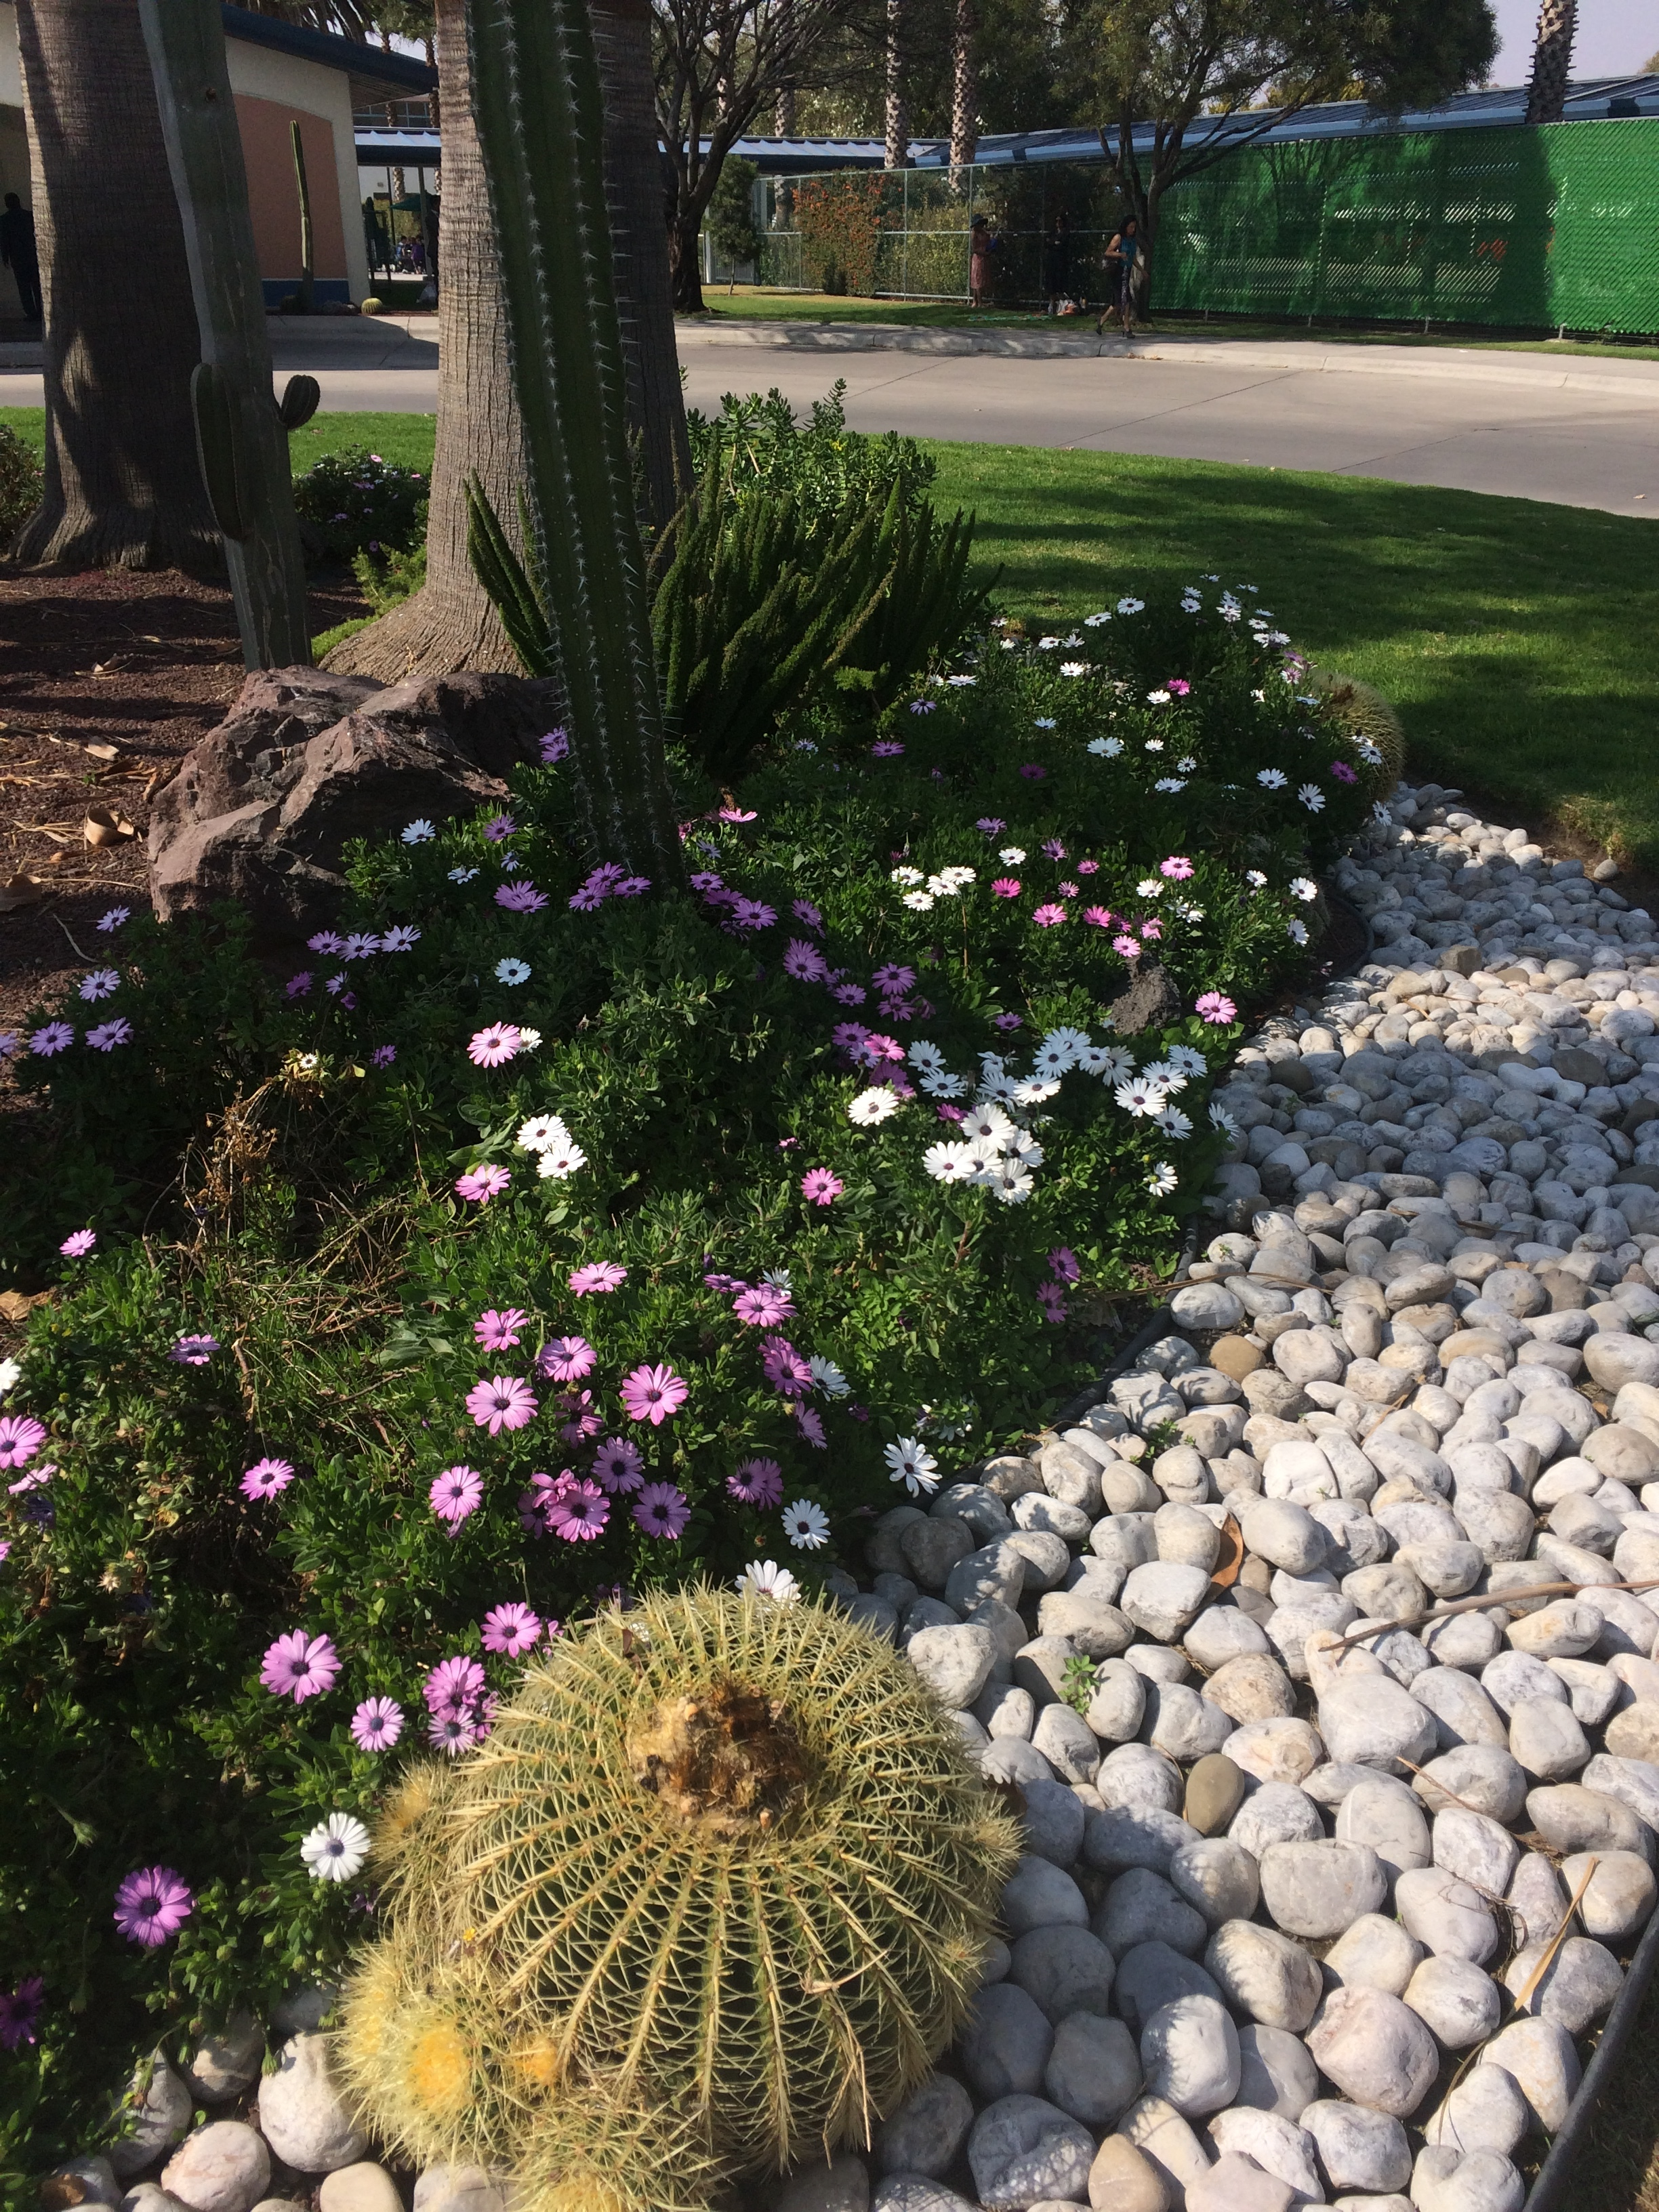 Landscaping - A beautiful front yard landscape, backyard landscaping design and professional landscape maintenance are among the most personal and most visible methods to differentiate a home. Landscape are investments that make sense and help you make the most of your home and the time you spend there with family and friends.At Shapes and Curves, we can help you design and style a landscape that is uniquely you.SERVICESPaver Patio, Paths, Steps, Fire Pit, Pond, Retaining Walls, Lawn Care, Irrigation Systems, Tree Care, Mulch and Landscape Stone, Edging, Planting, Pruning.